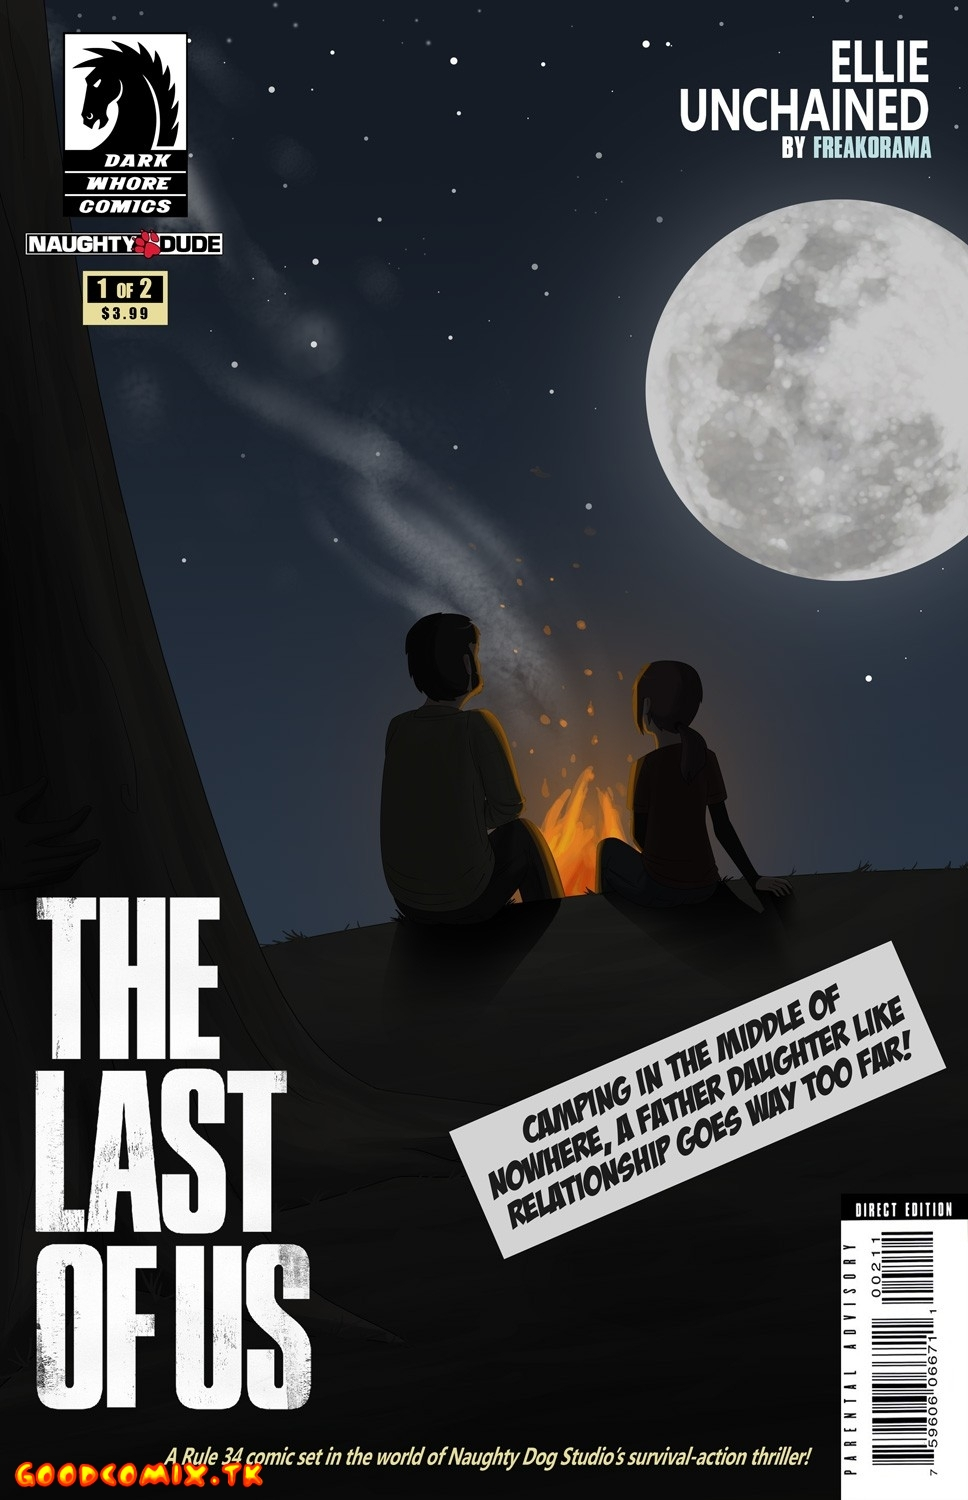 Goodcomix The Last of Us - [Freako] - Ellie Unchained #1 (Completed)